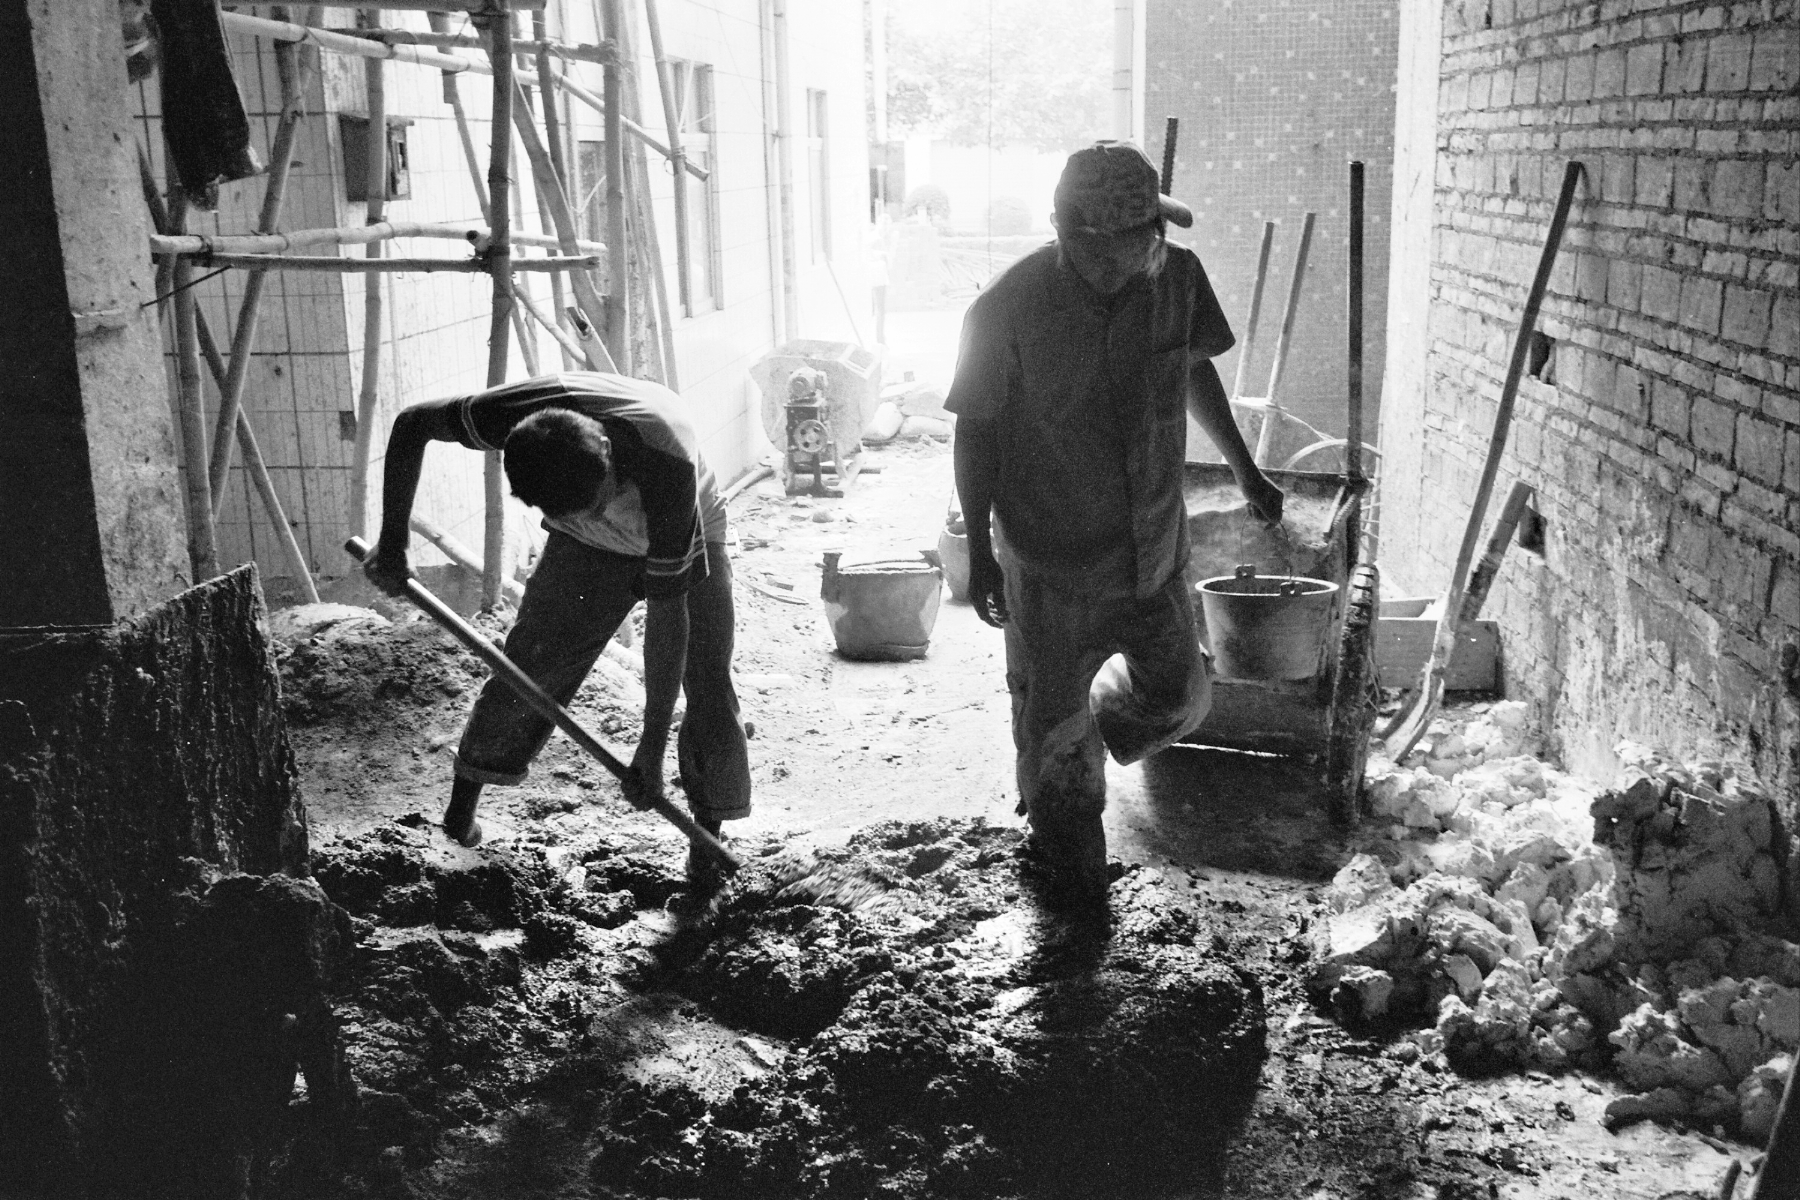 Construction workers mix concrete for a new apartment building downtown (Dongguan, China)